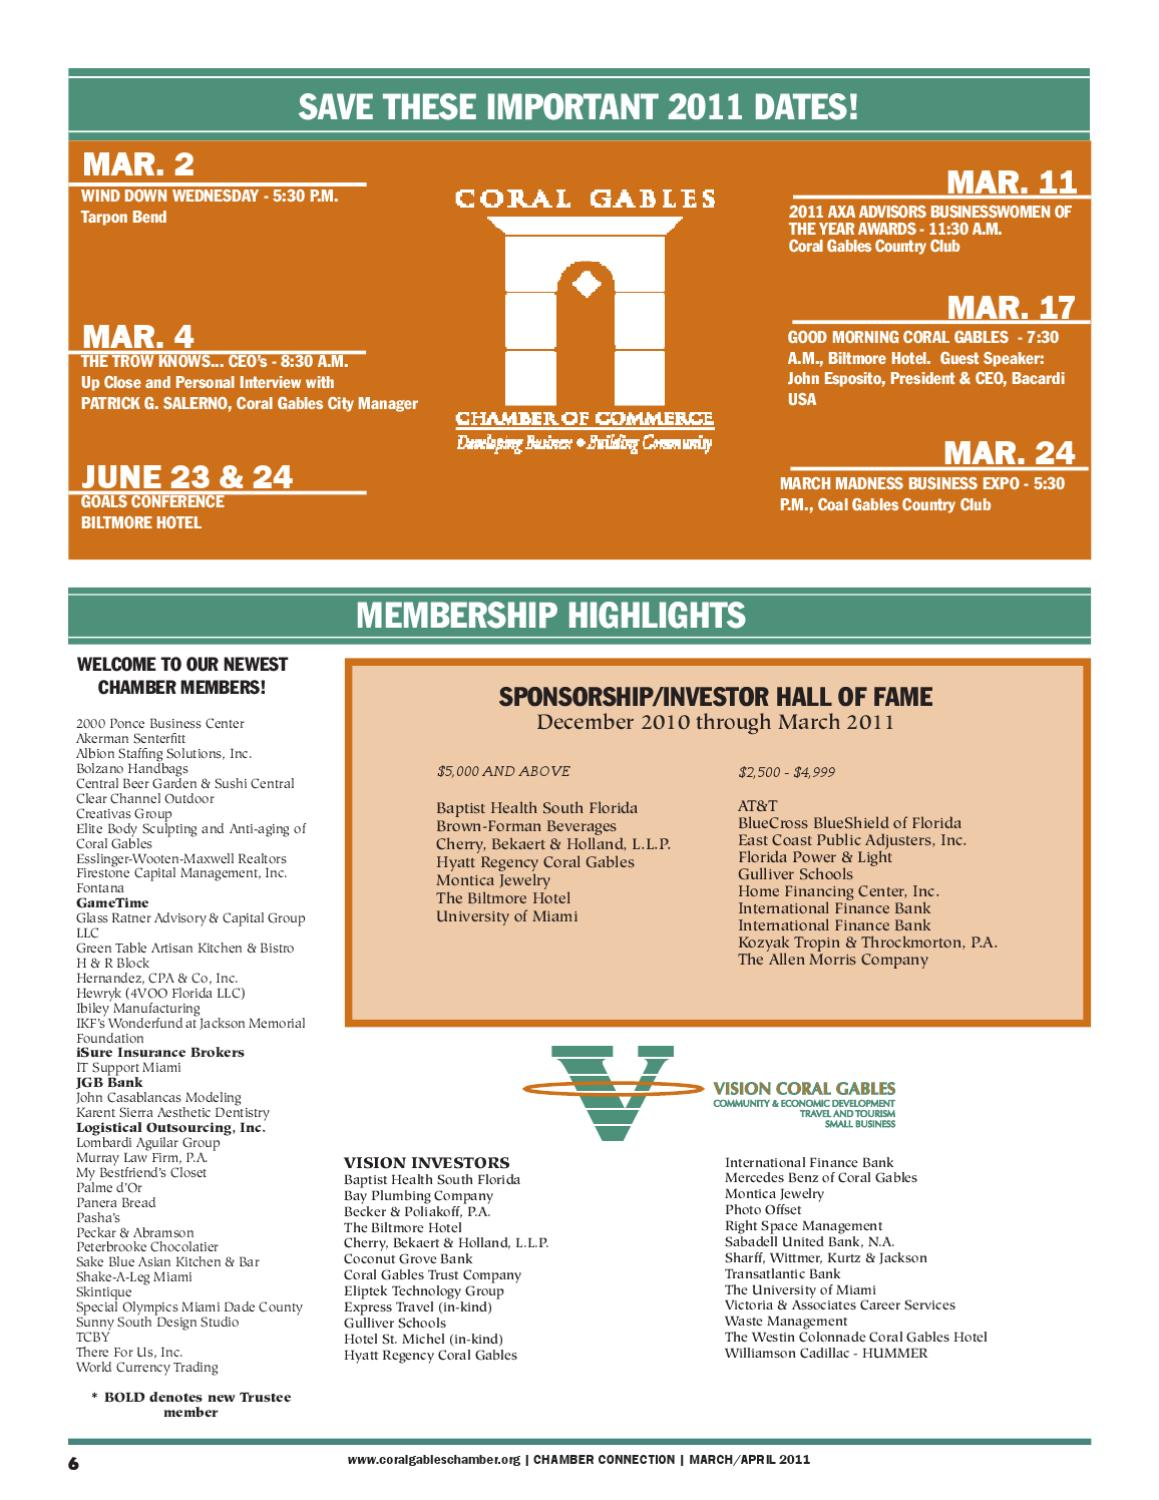 MARCH-APRIL by Coral Gables Chamber of Commerce - issuu